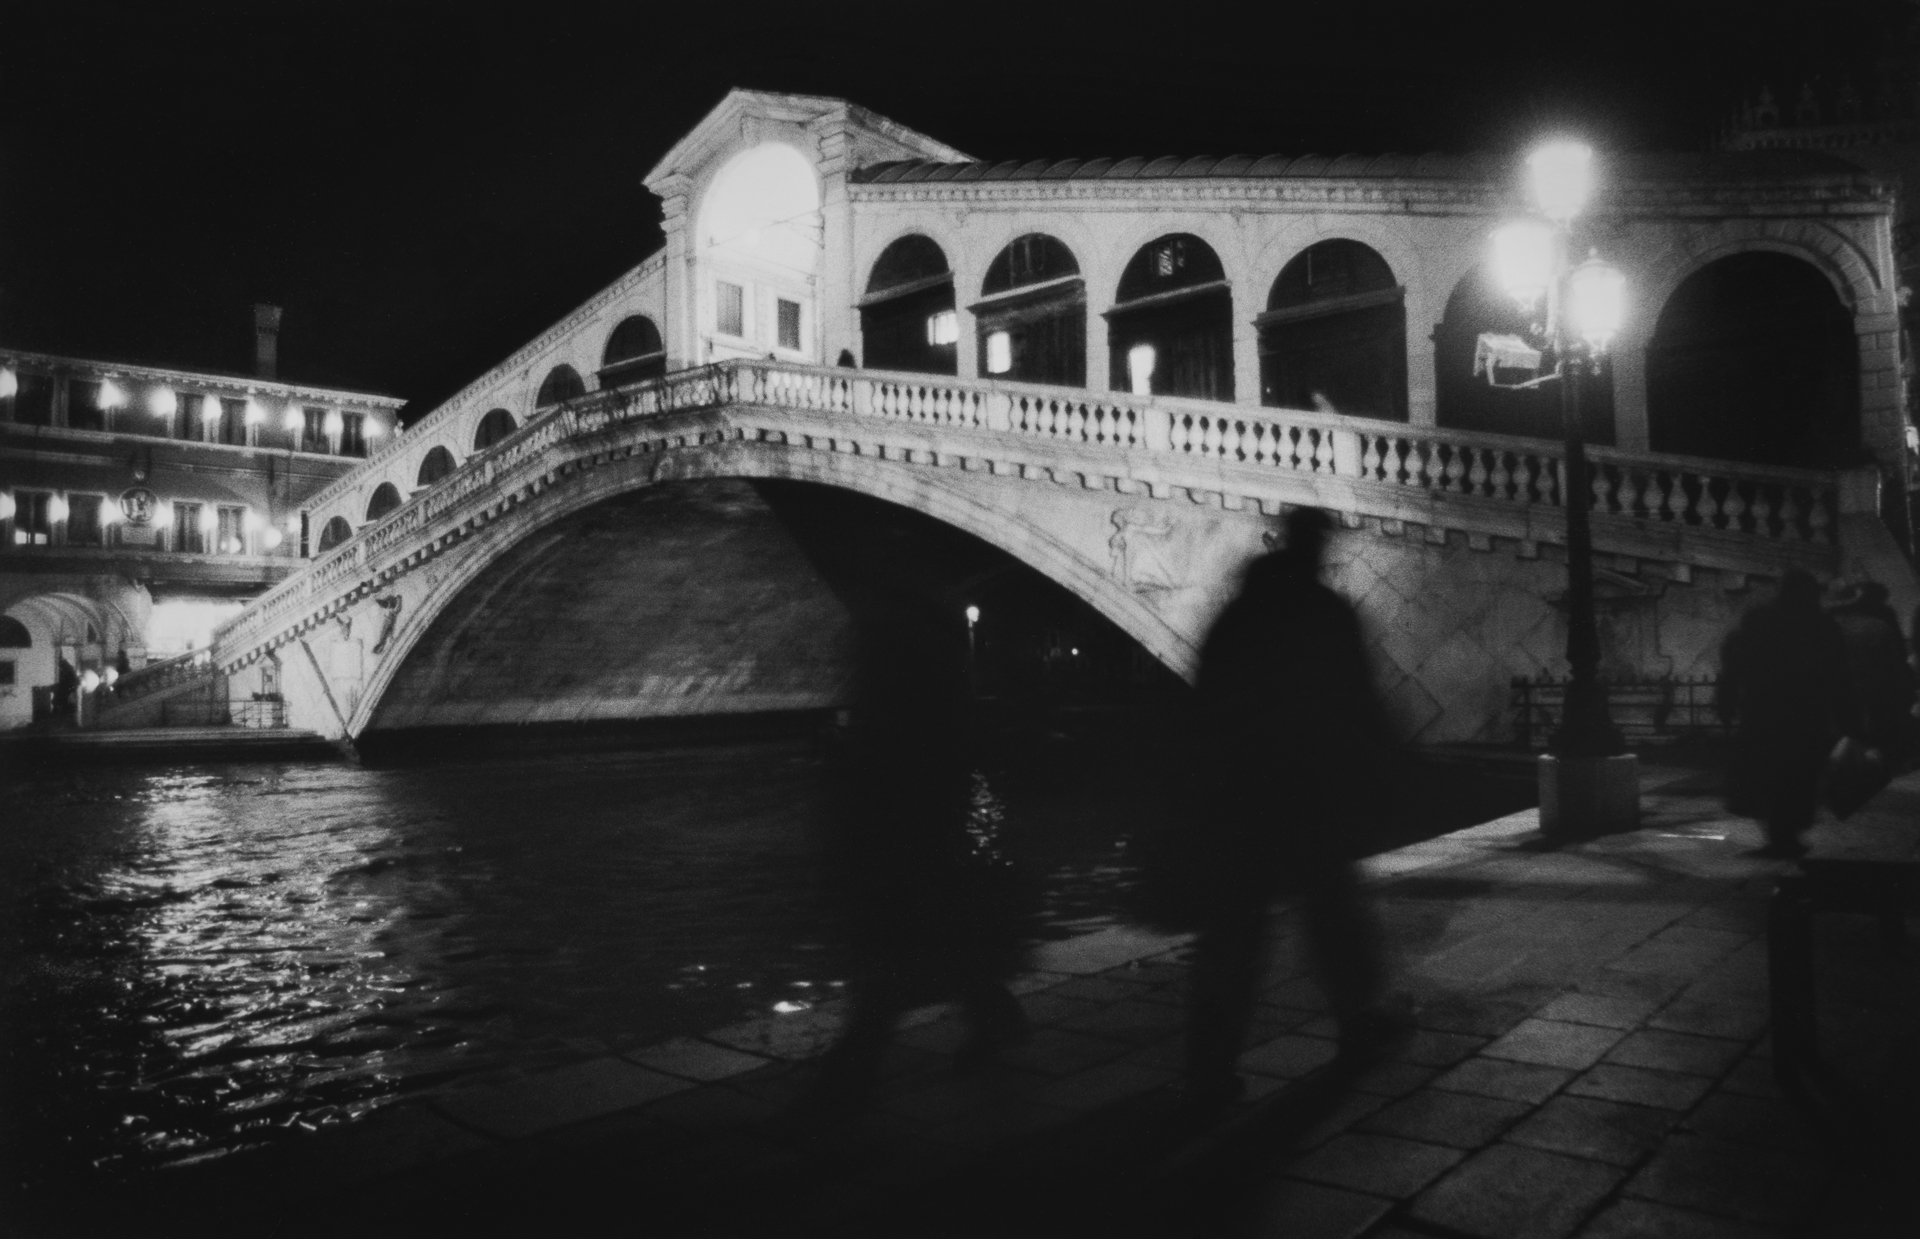 Shadows at the Rialto Bridge - Venice, Italy